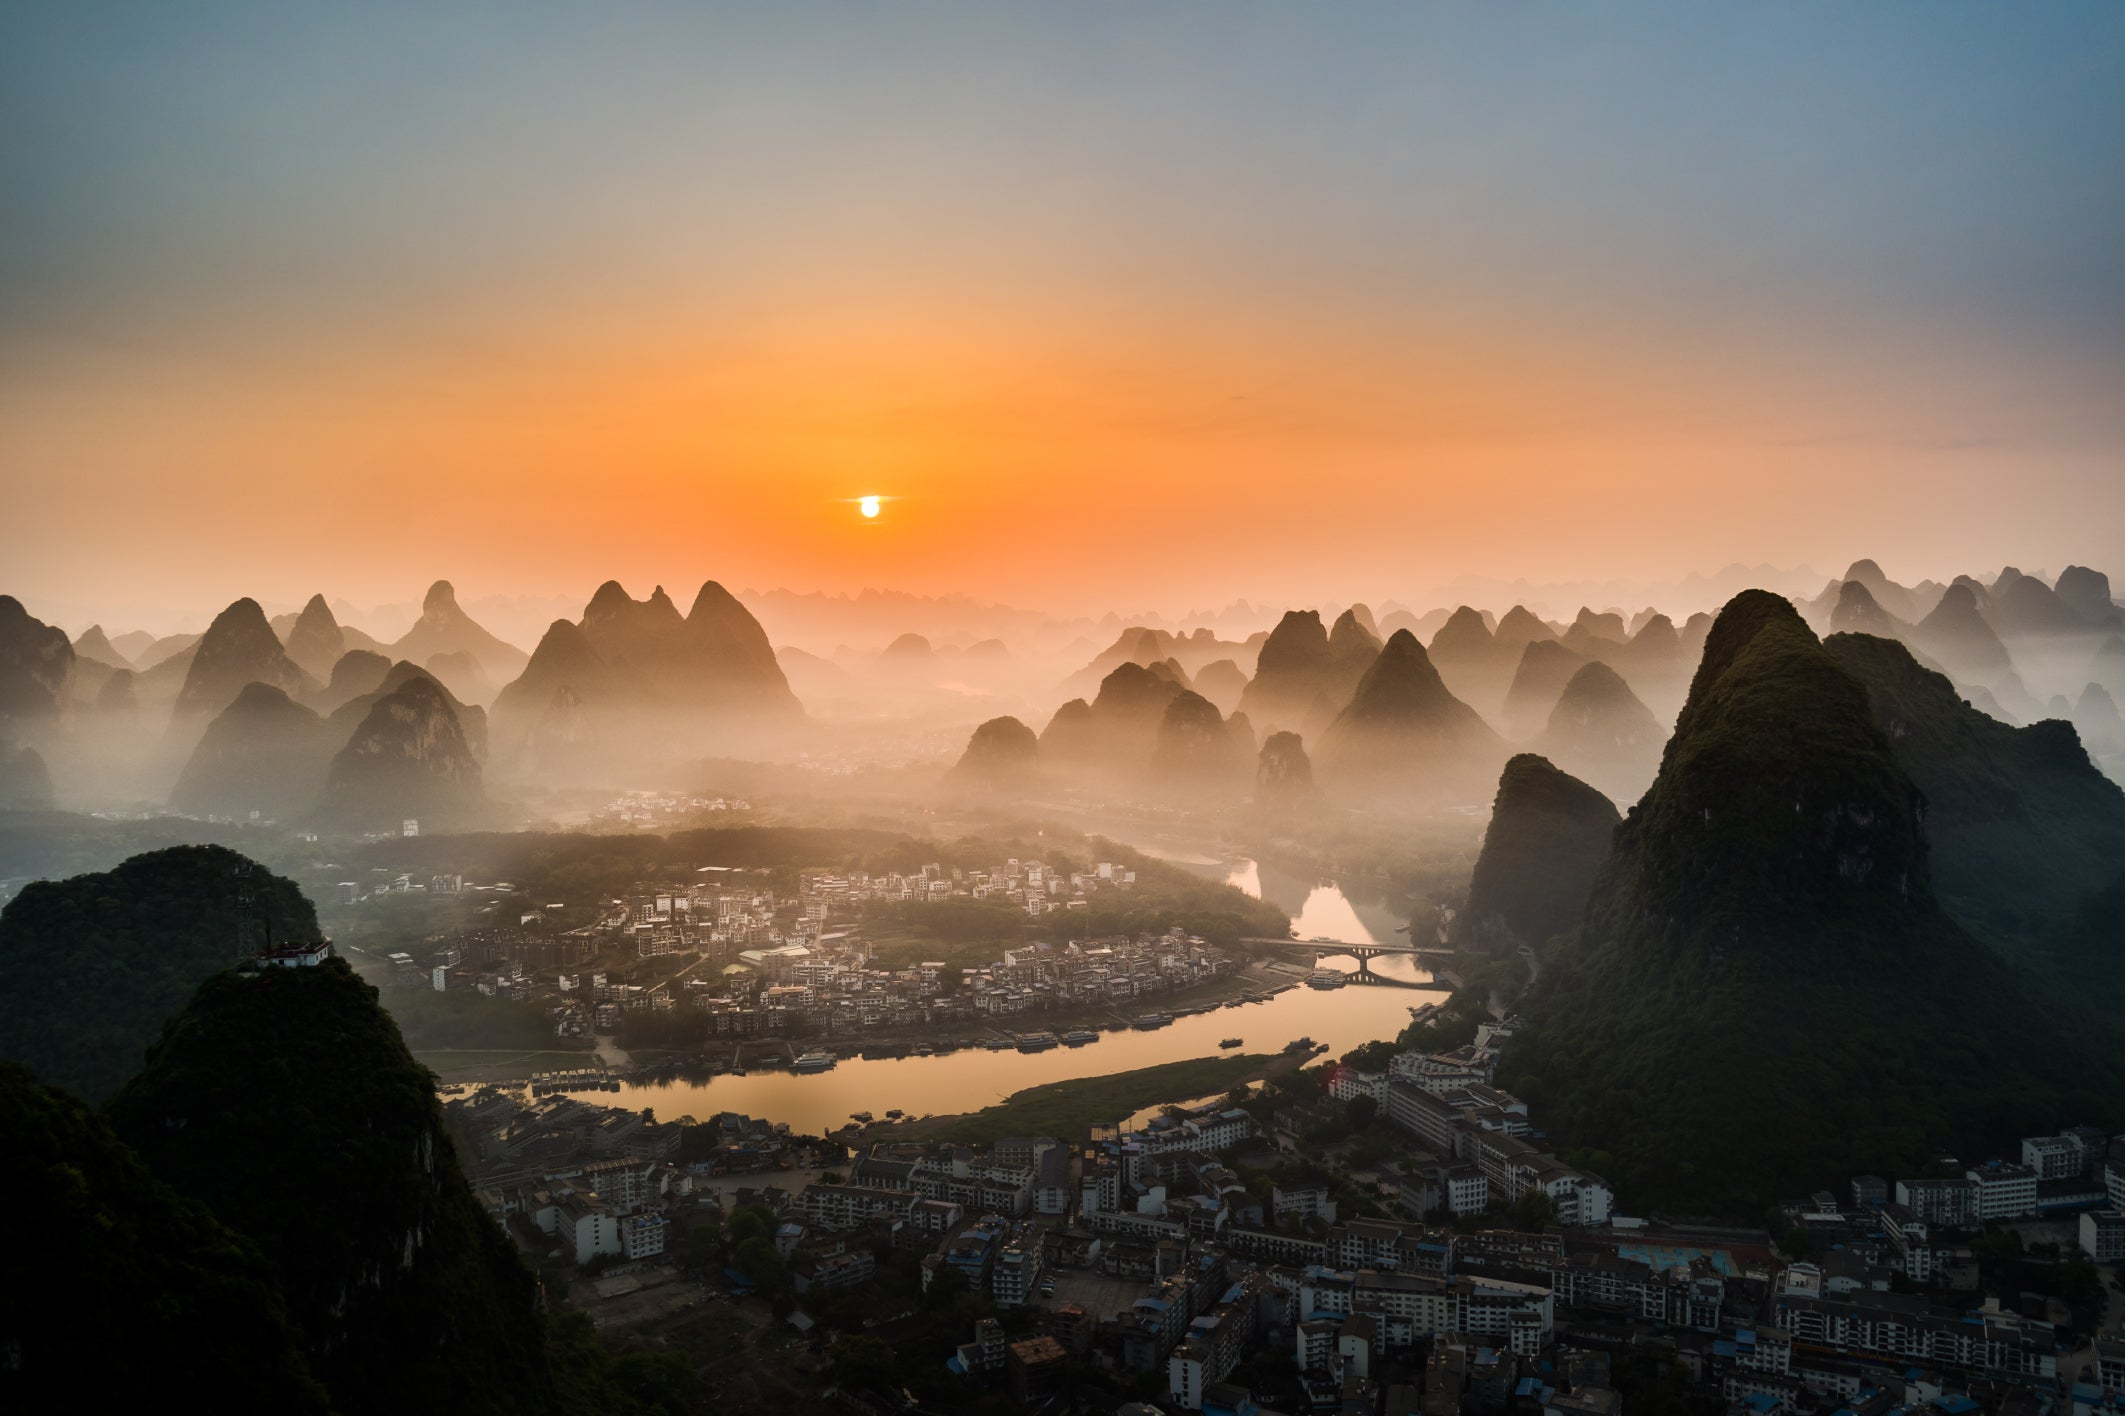 inkster mi 48141 10 day weather forecast the weather channel